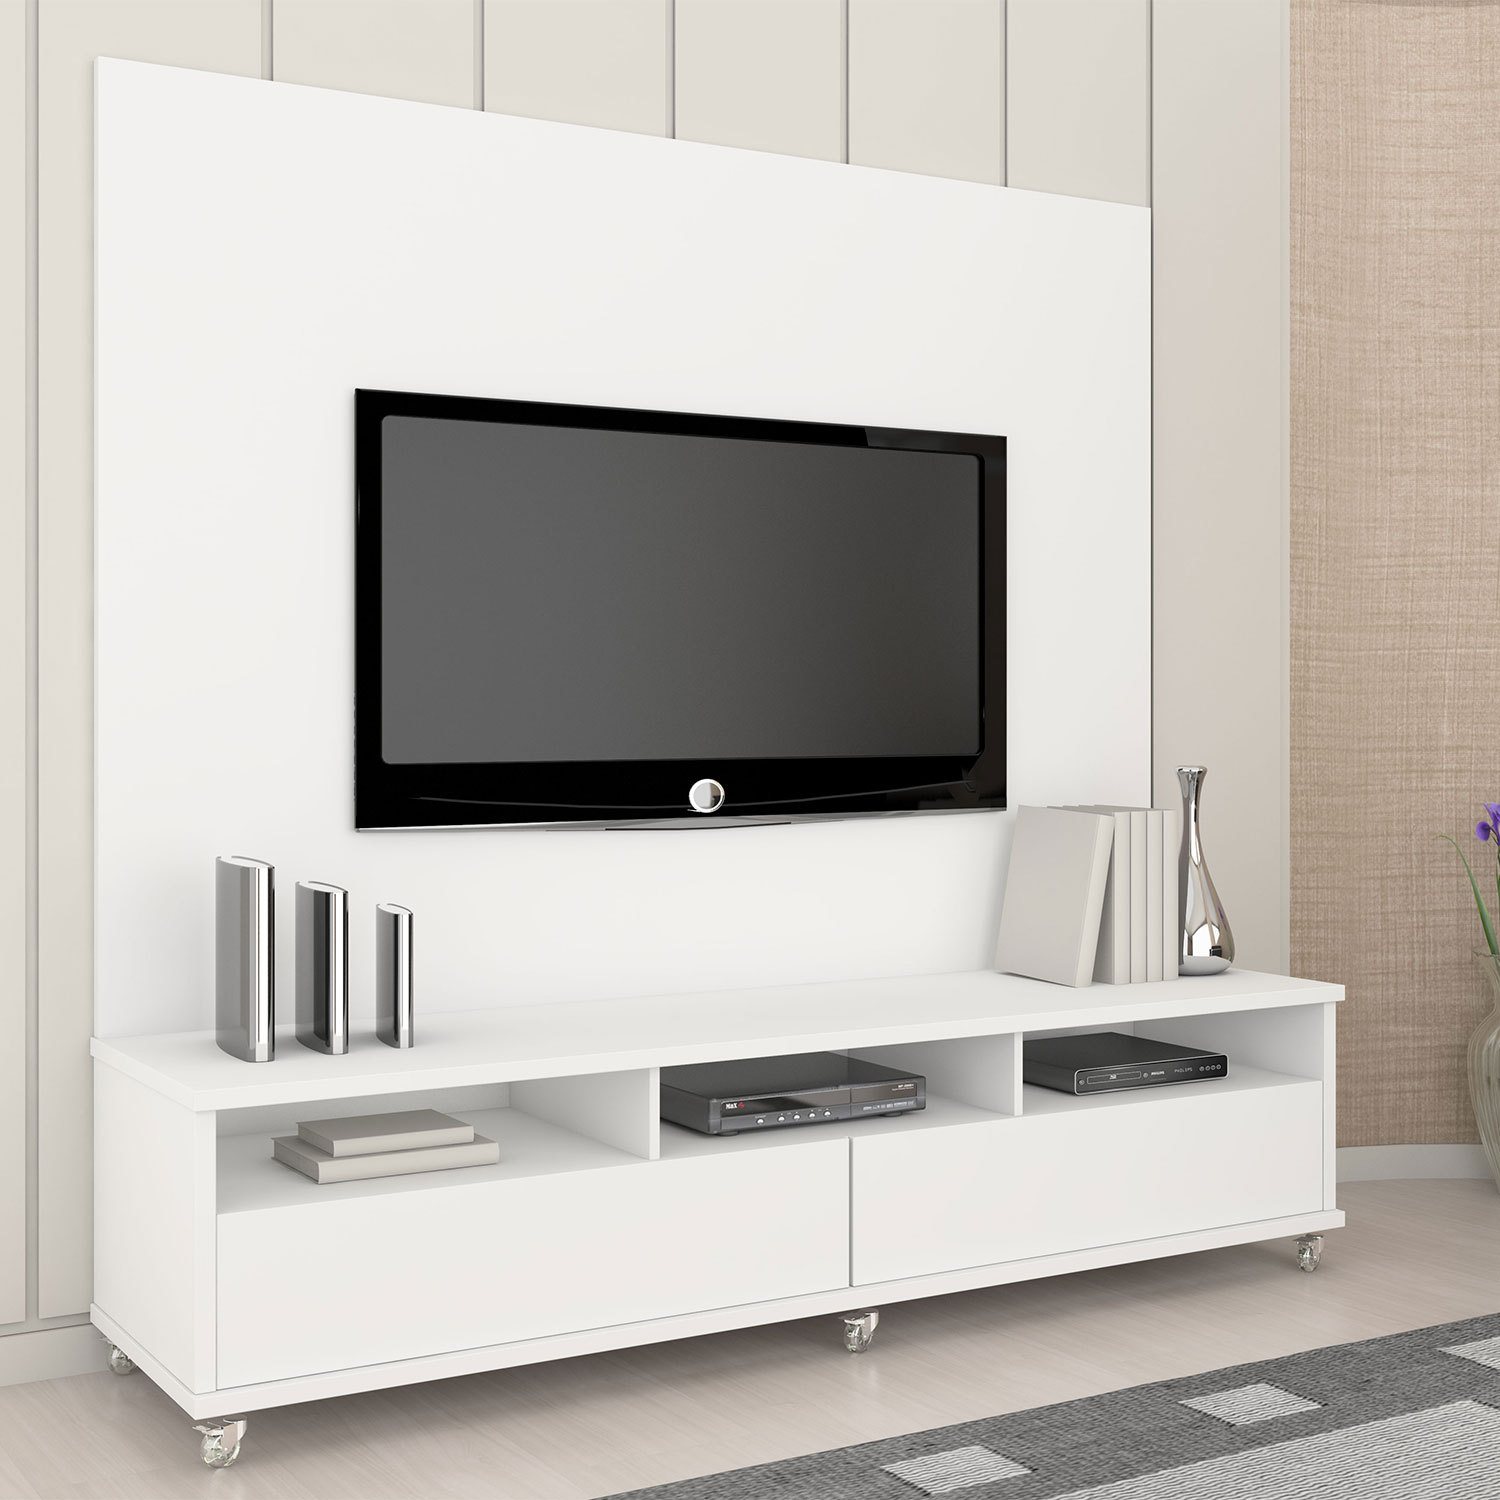 rack para sala de tv diversos modelos em fotos ideias mix. Black Bedroom Furniture Sets. Home Design Ideas